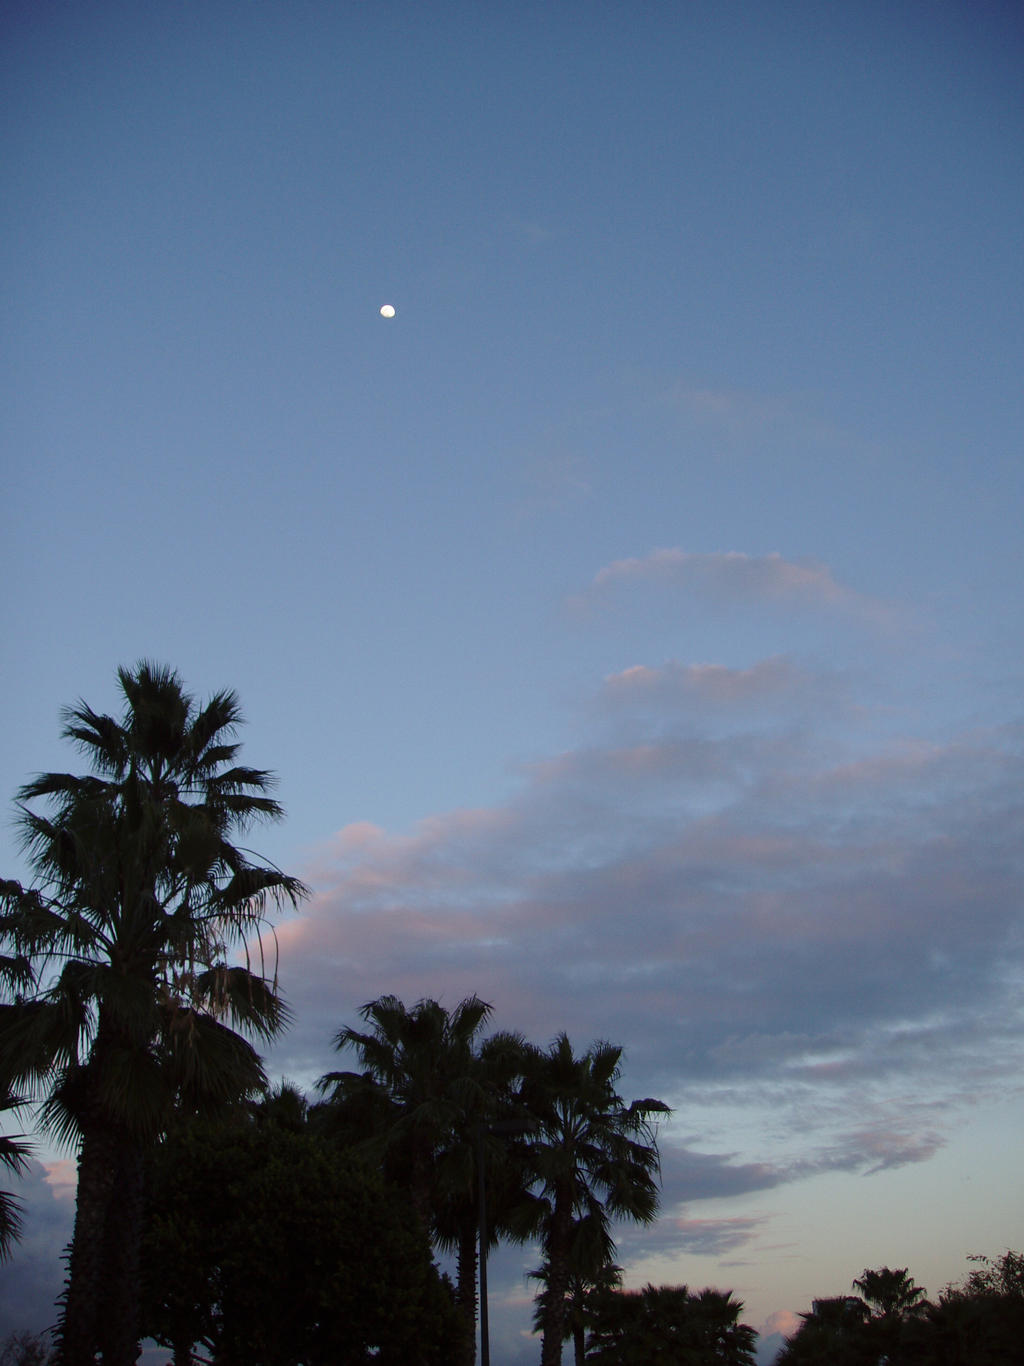 Evening sky with plam trees by Elliesmeria